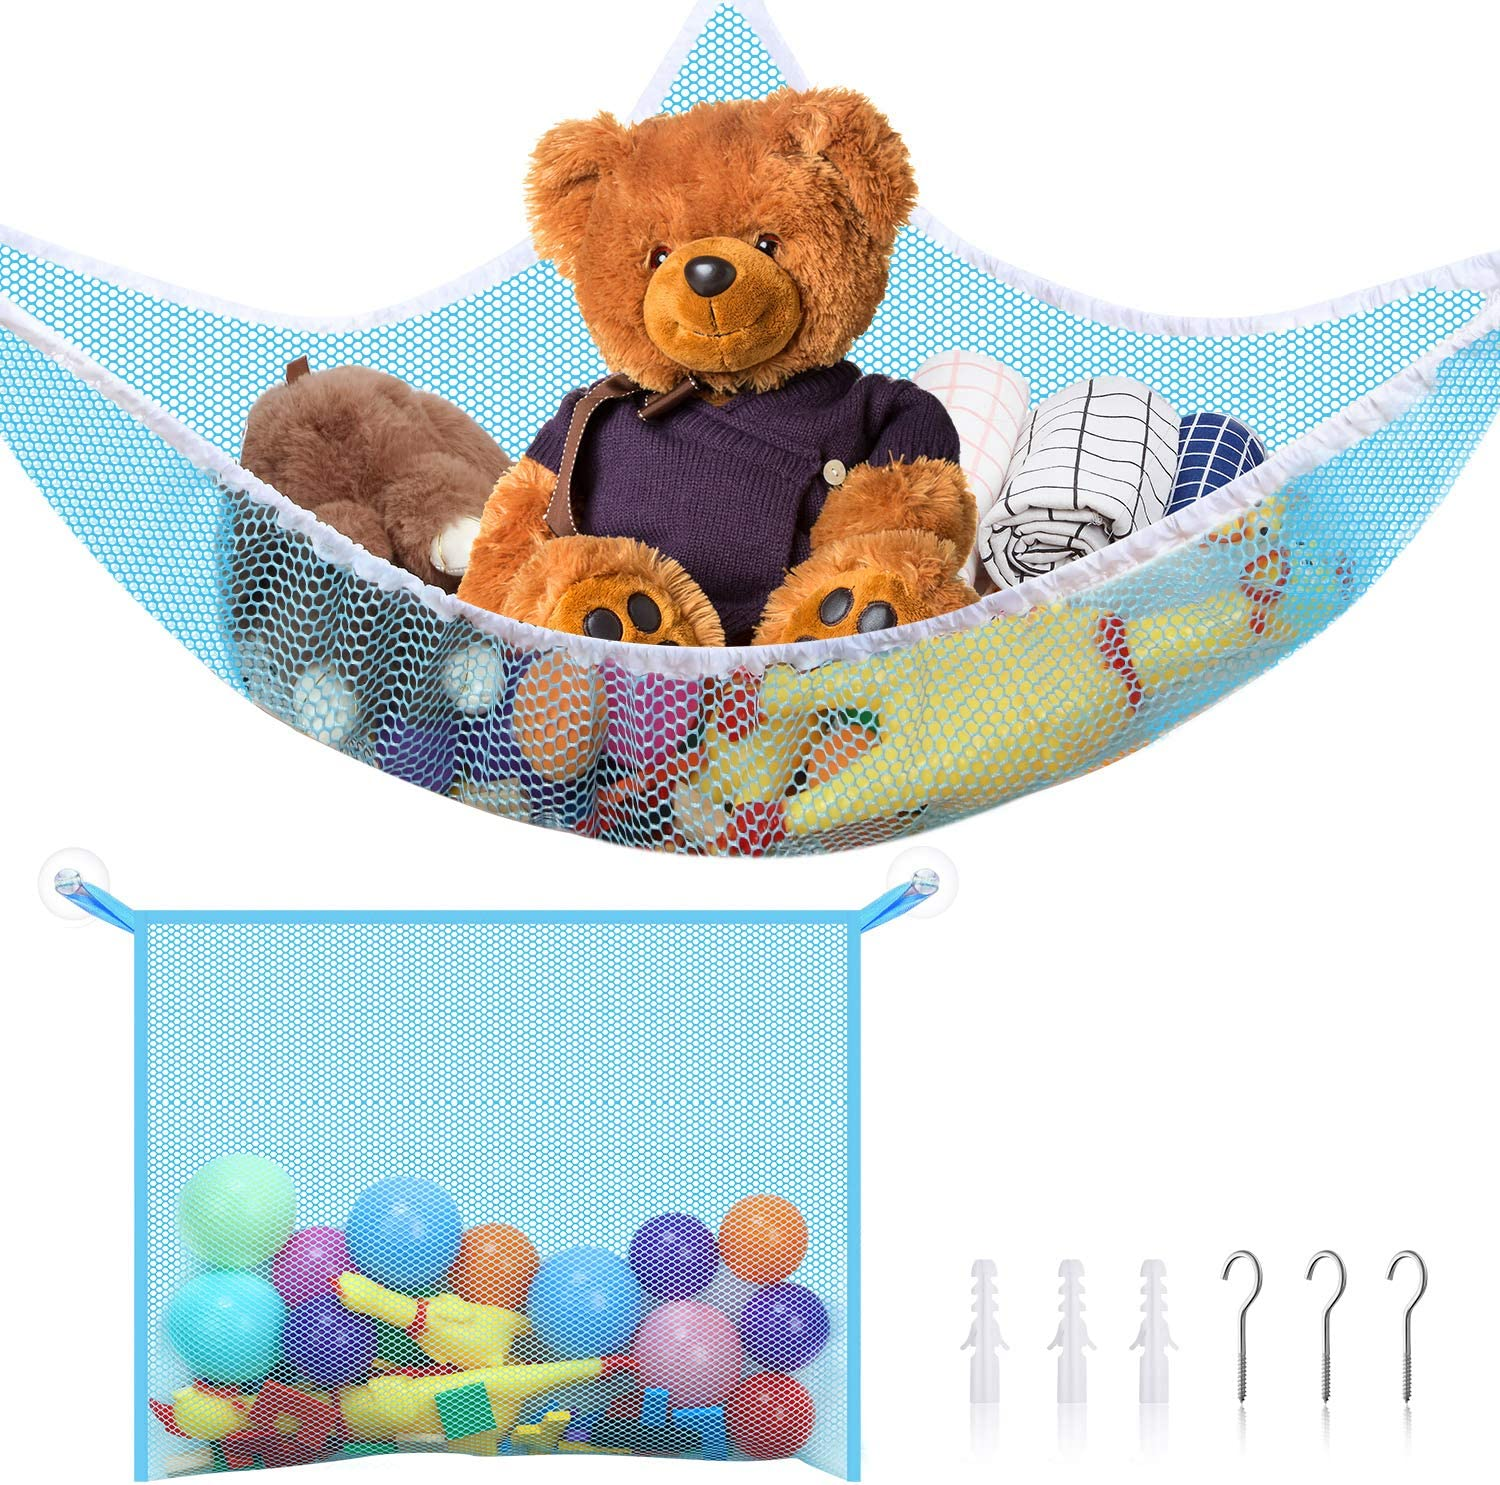 2 Pieces Toy Organizer Storage Net Kit Toy Hammock Stuffed Animal Storage and Mesh Bath Toy Organizer Holder with Installation Tool Bathtub Toy Mesh Net Storage Bag for Organizing Kids Toys Pink